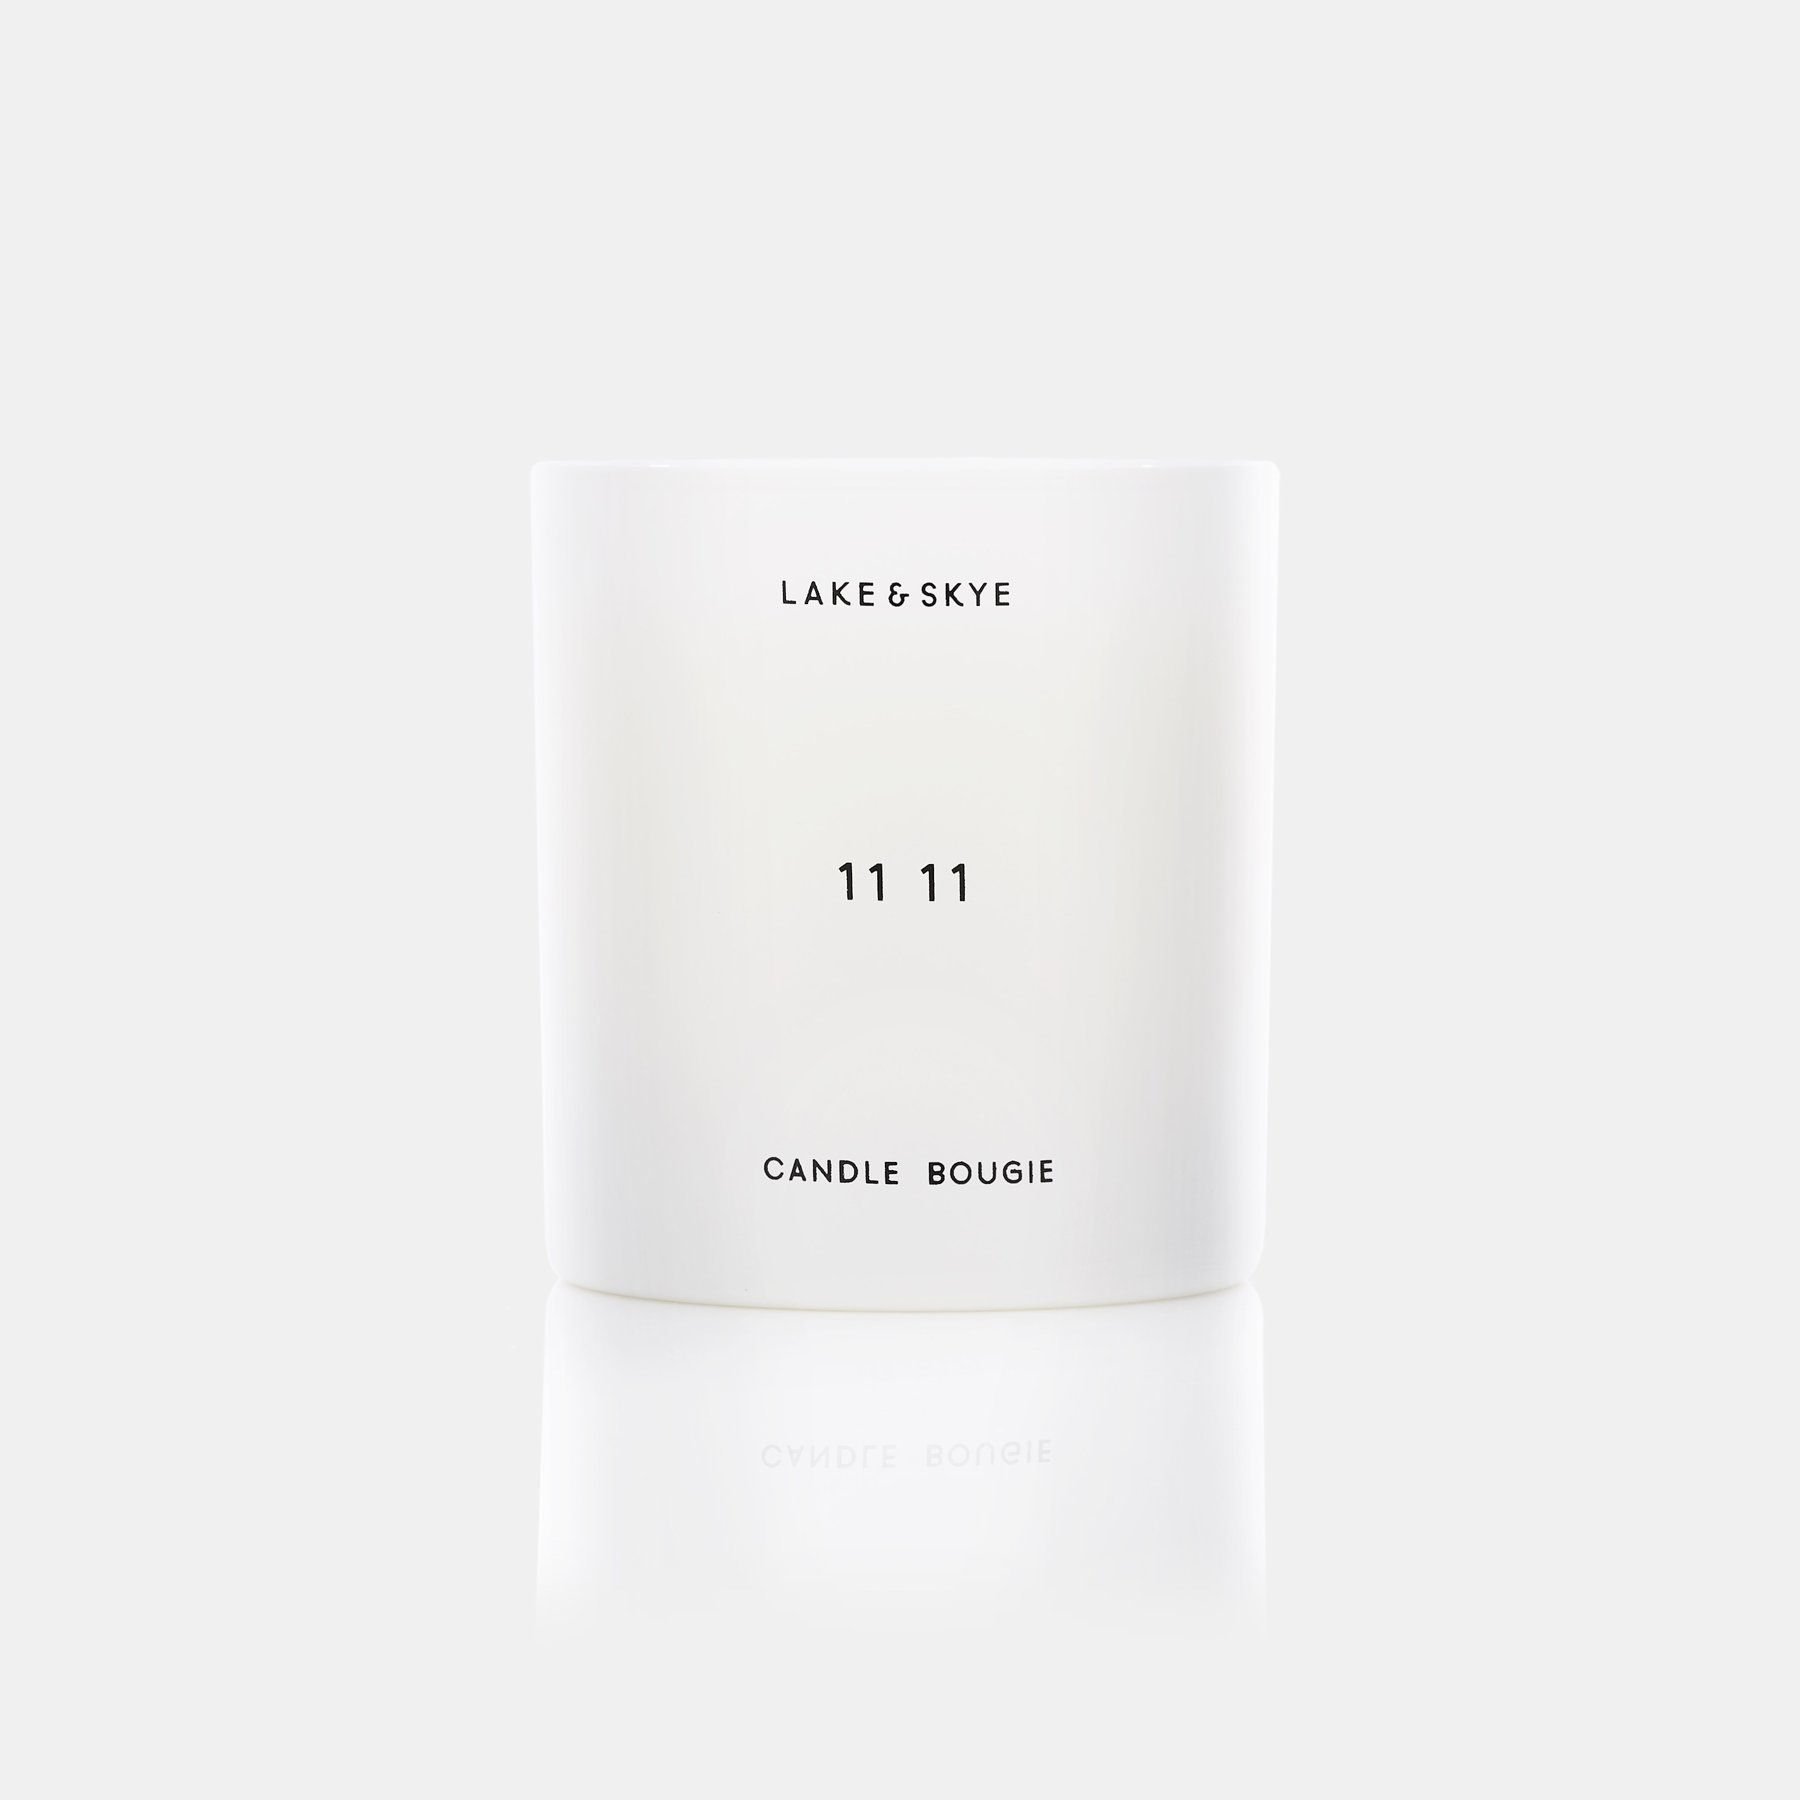 Lake & Skye 11:11 Candle $48